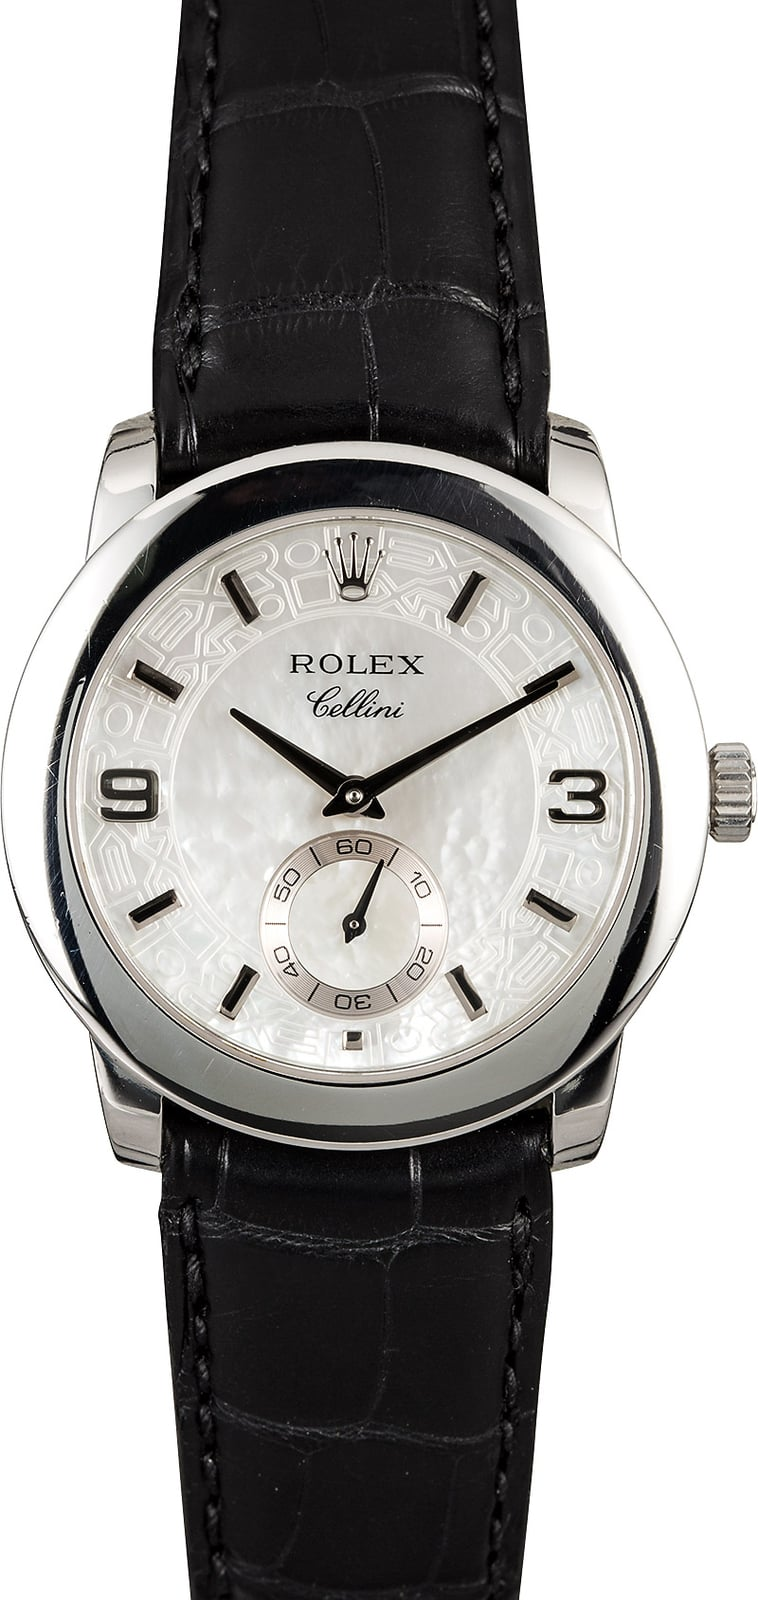 Rolex cellini 5240 cellinium platinum for Rolex cellini